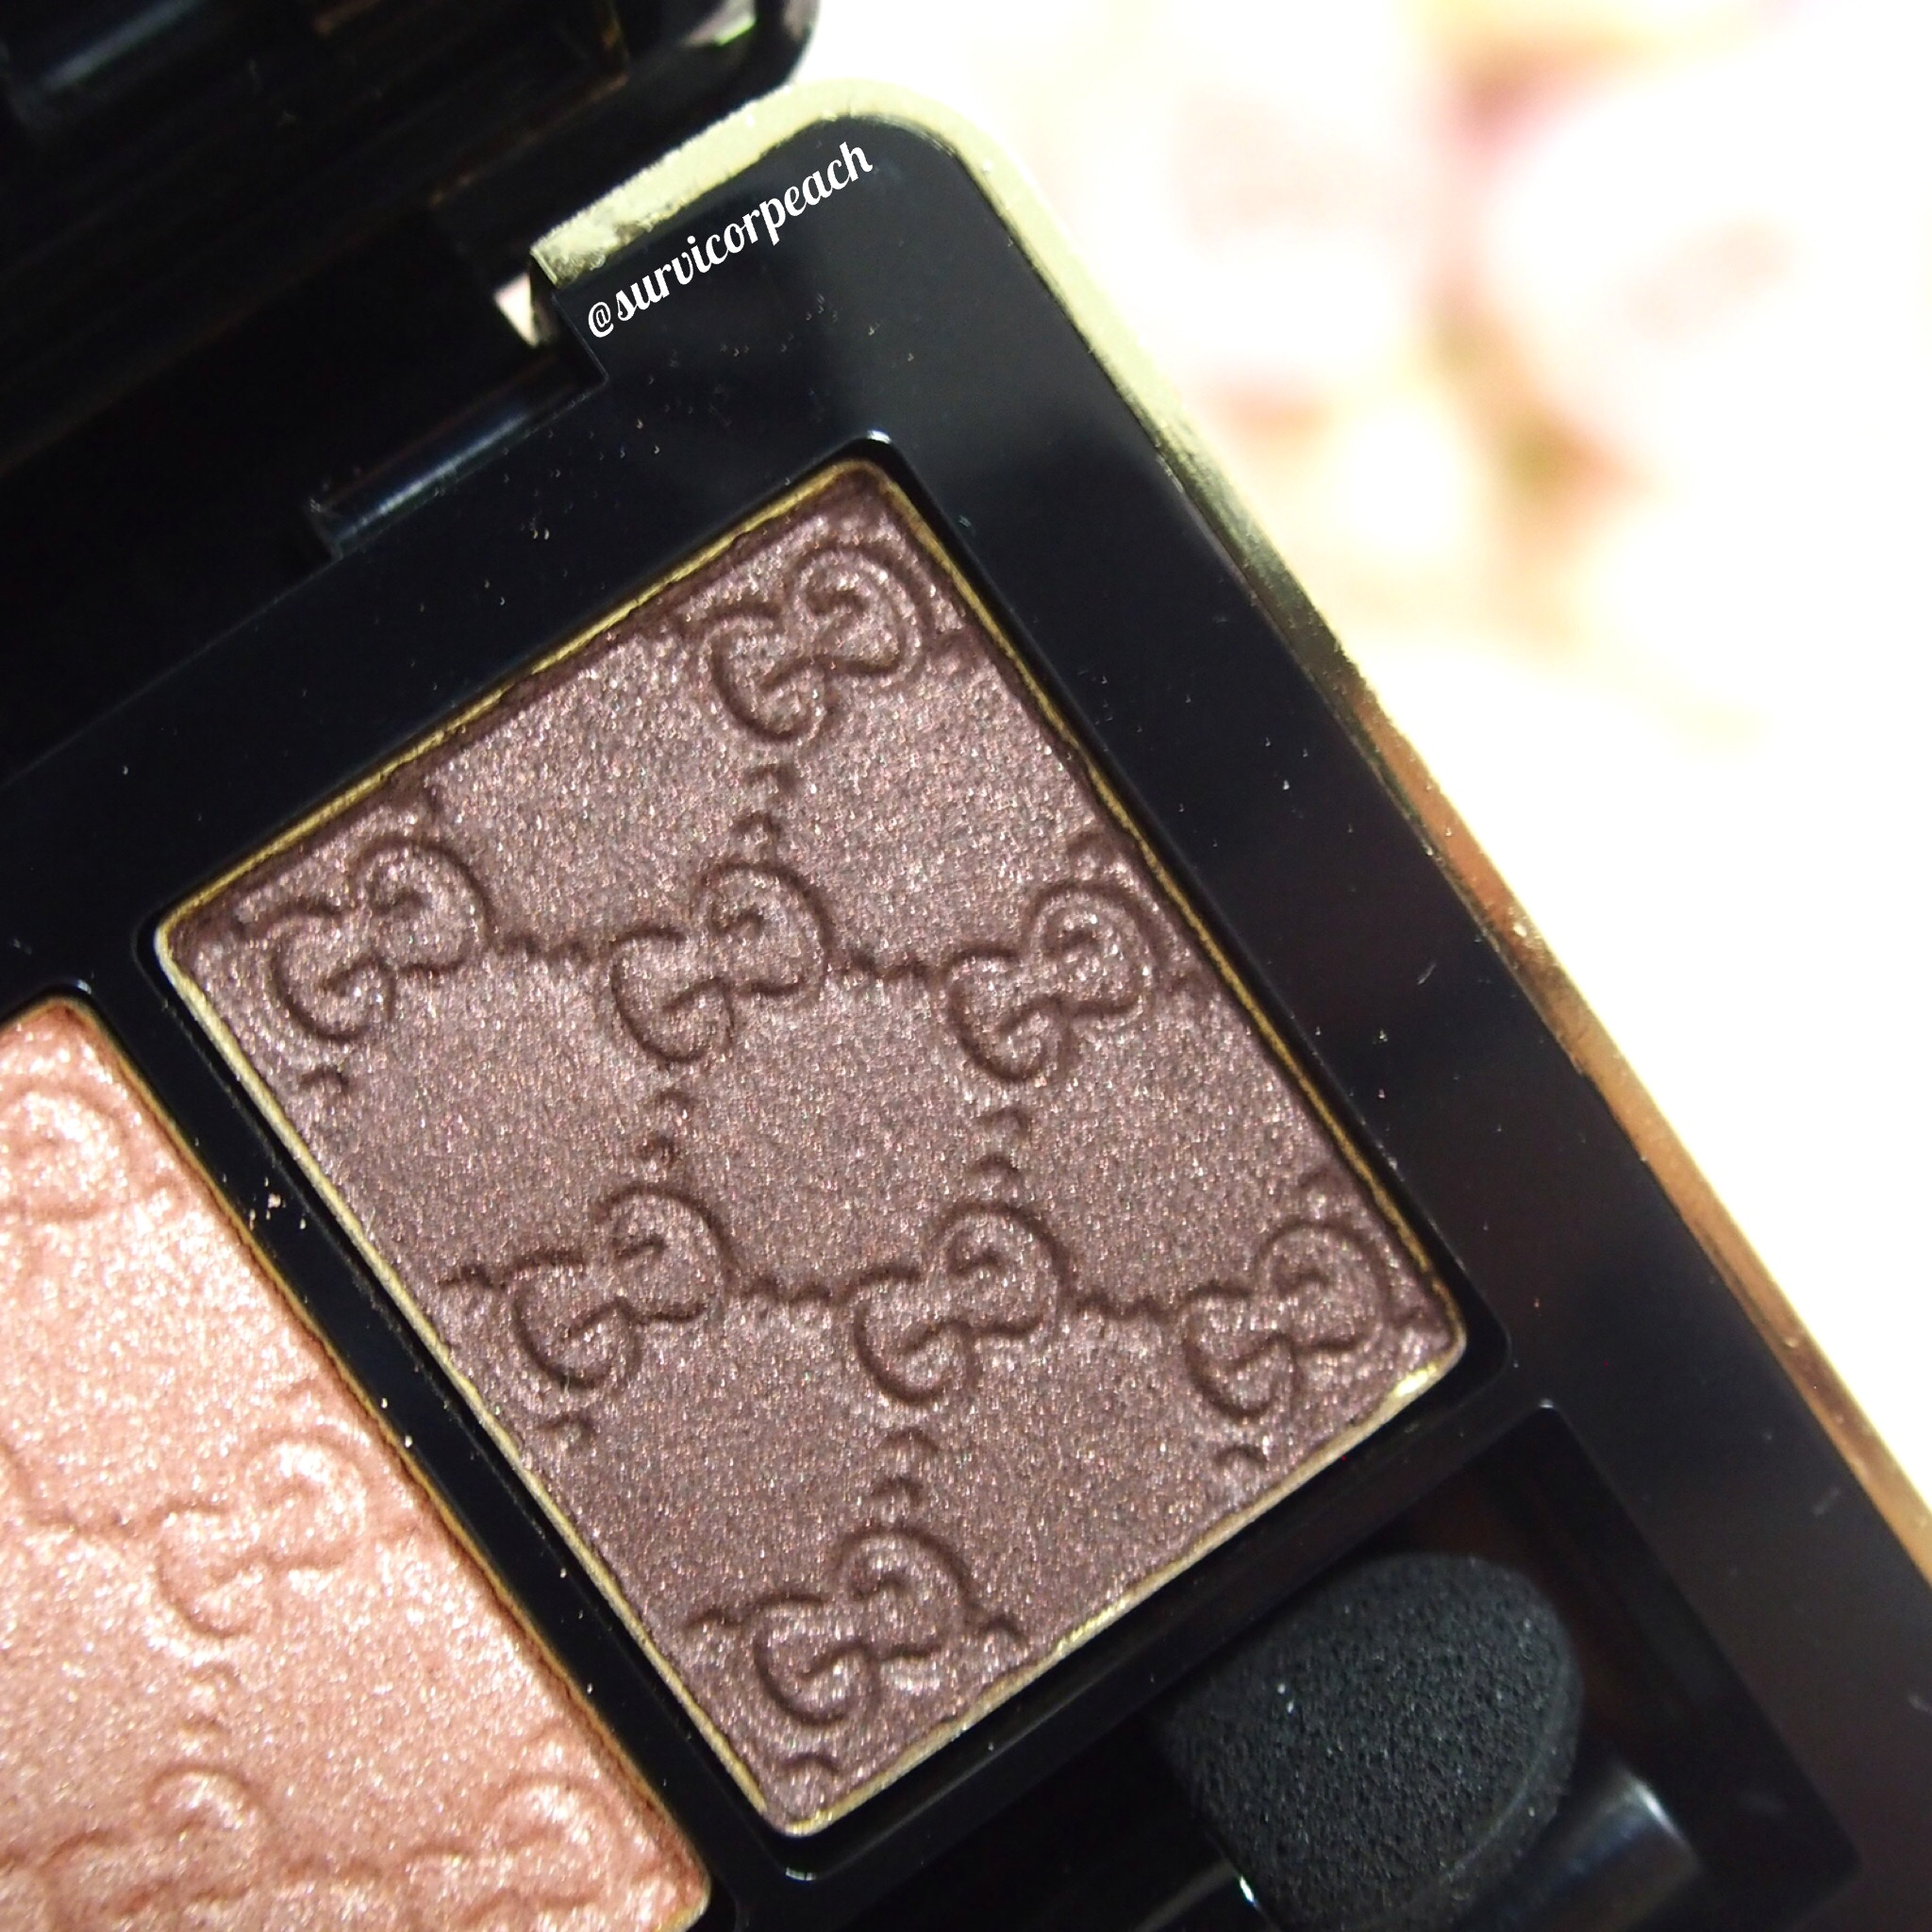 Gucci Amaretto Magnetic Color Shadow Duo - right (in artificial light)